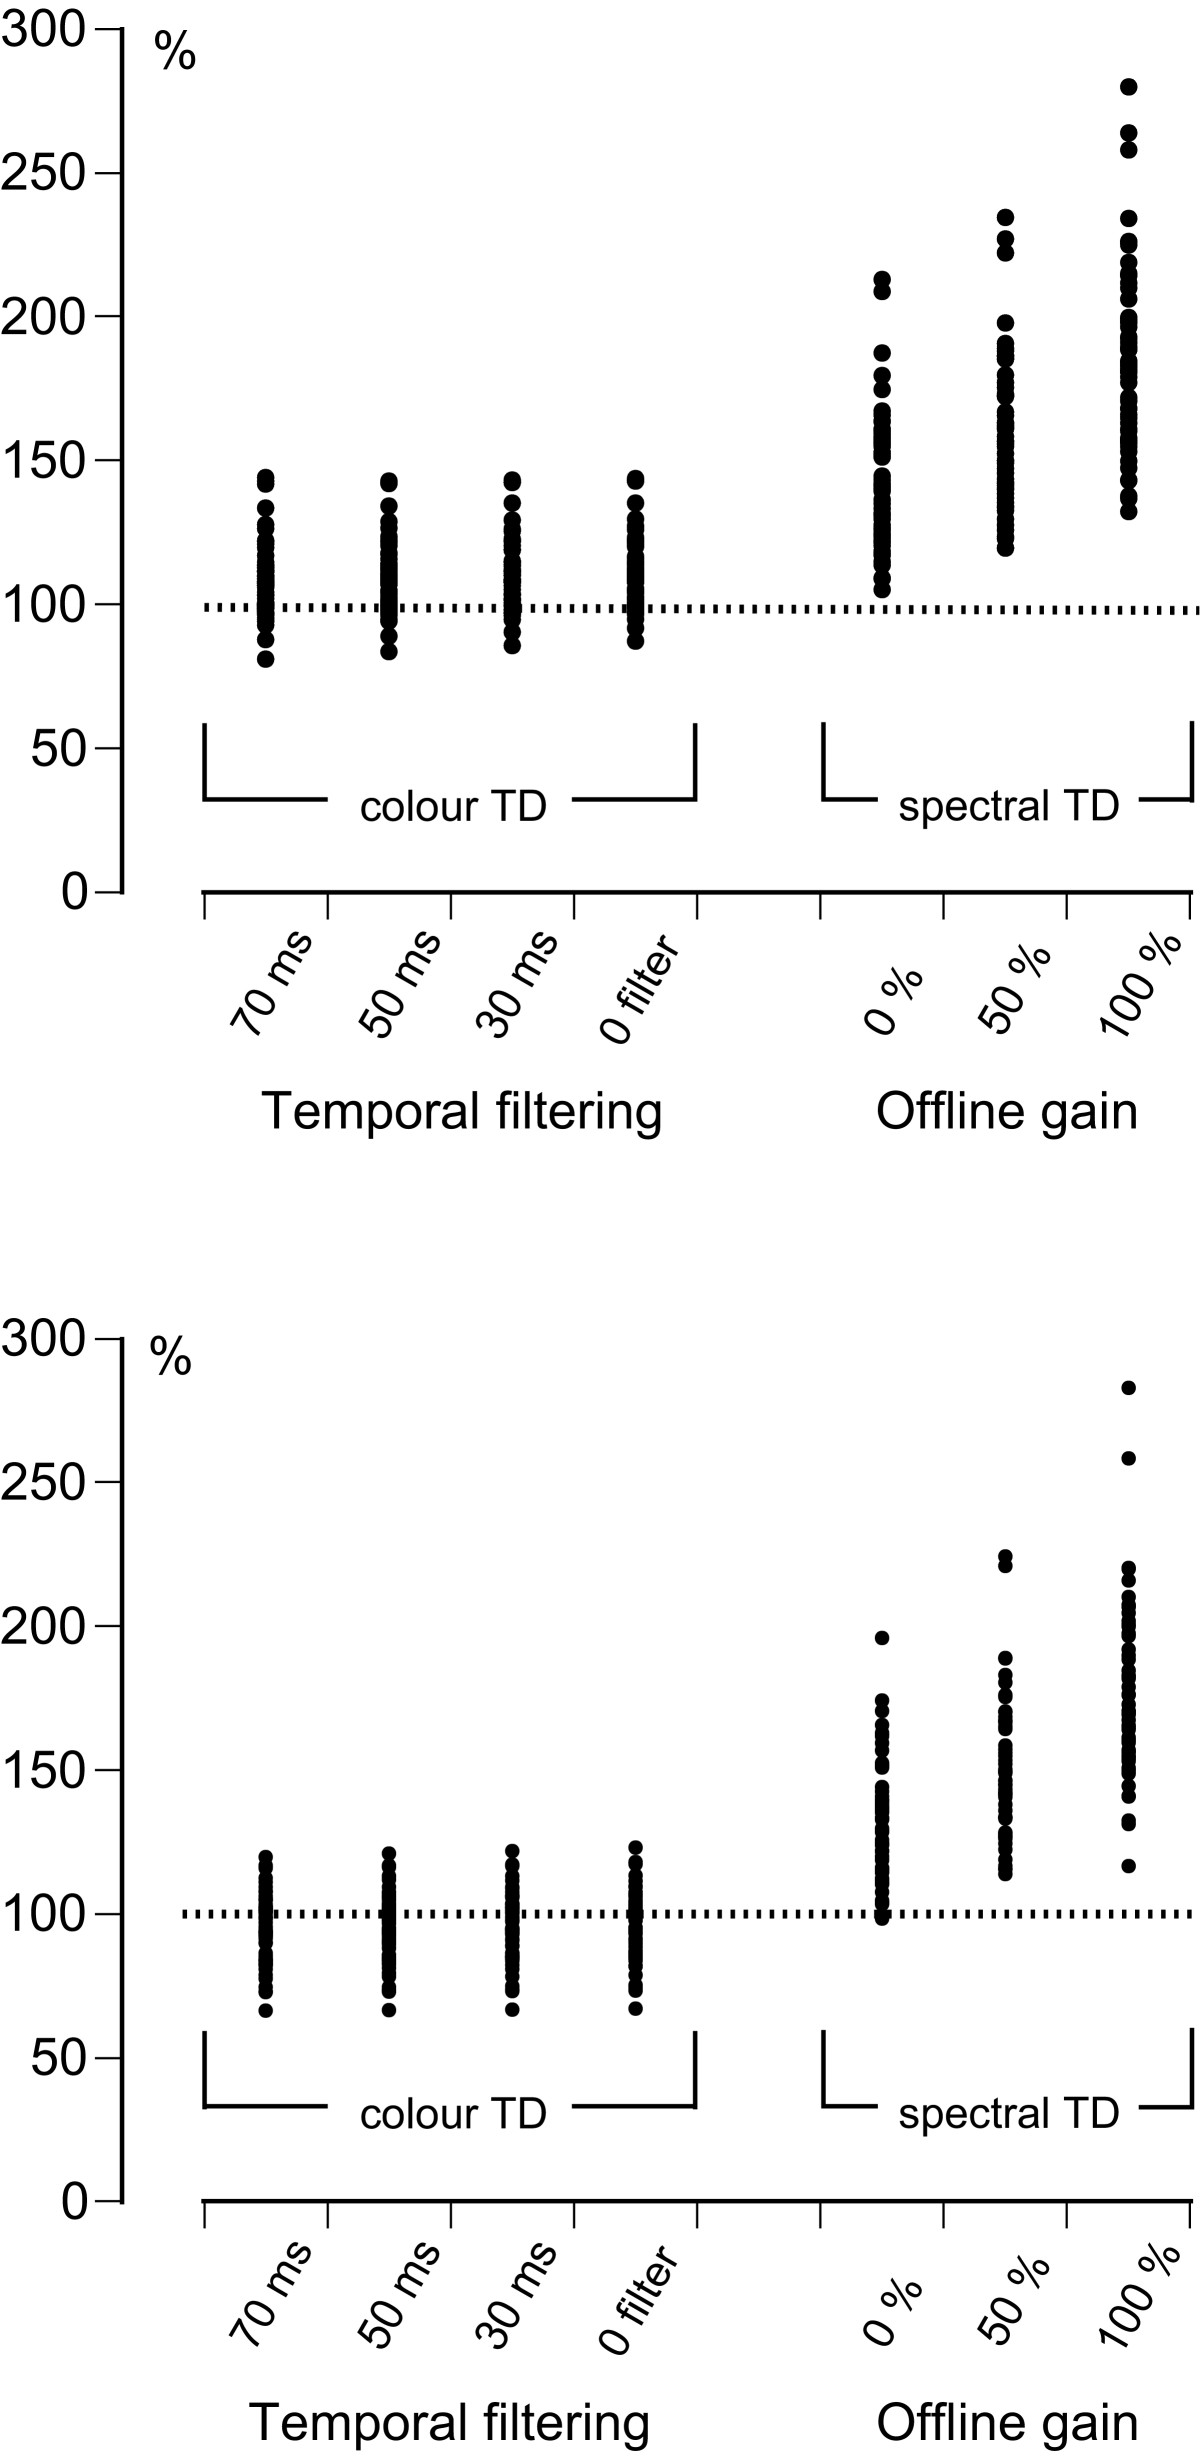 http://static-content.springer.com/image/art%3A10.1186%2F1476-7120-7-12/MediaObjects/12947_2009_Article_259_Fig4_HTML.jpg